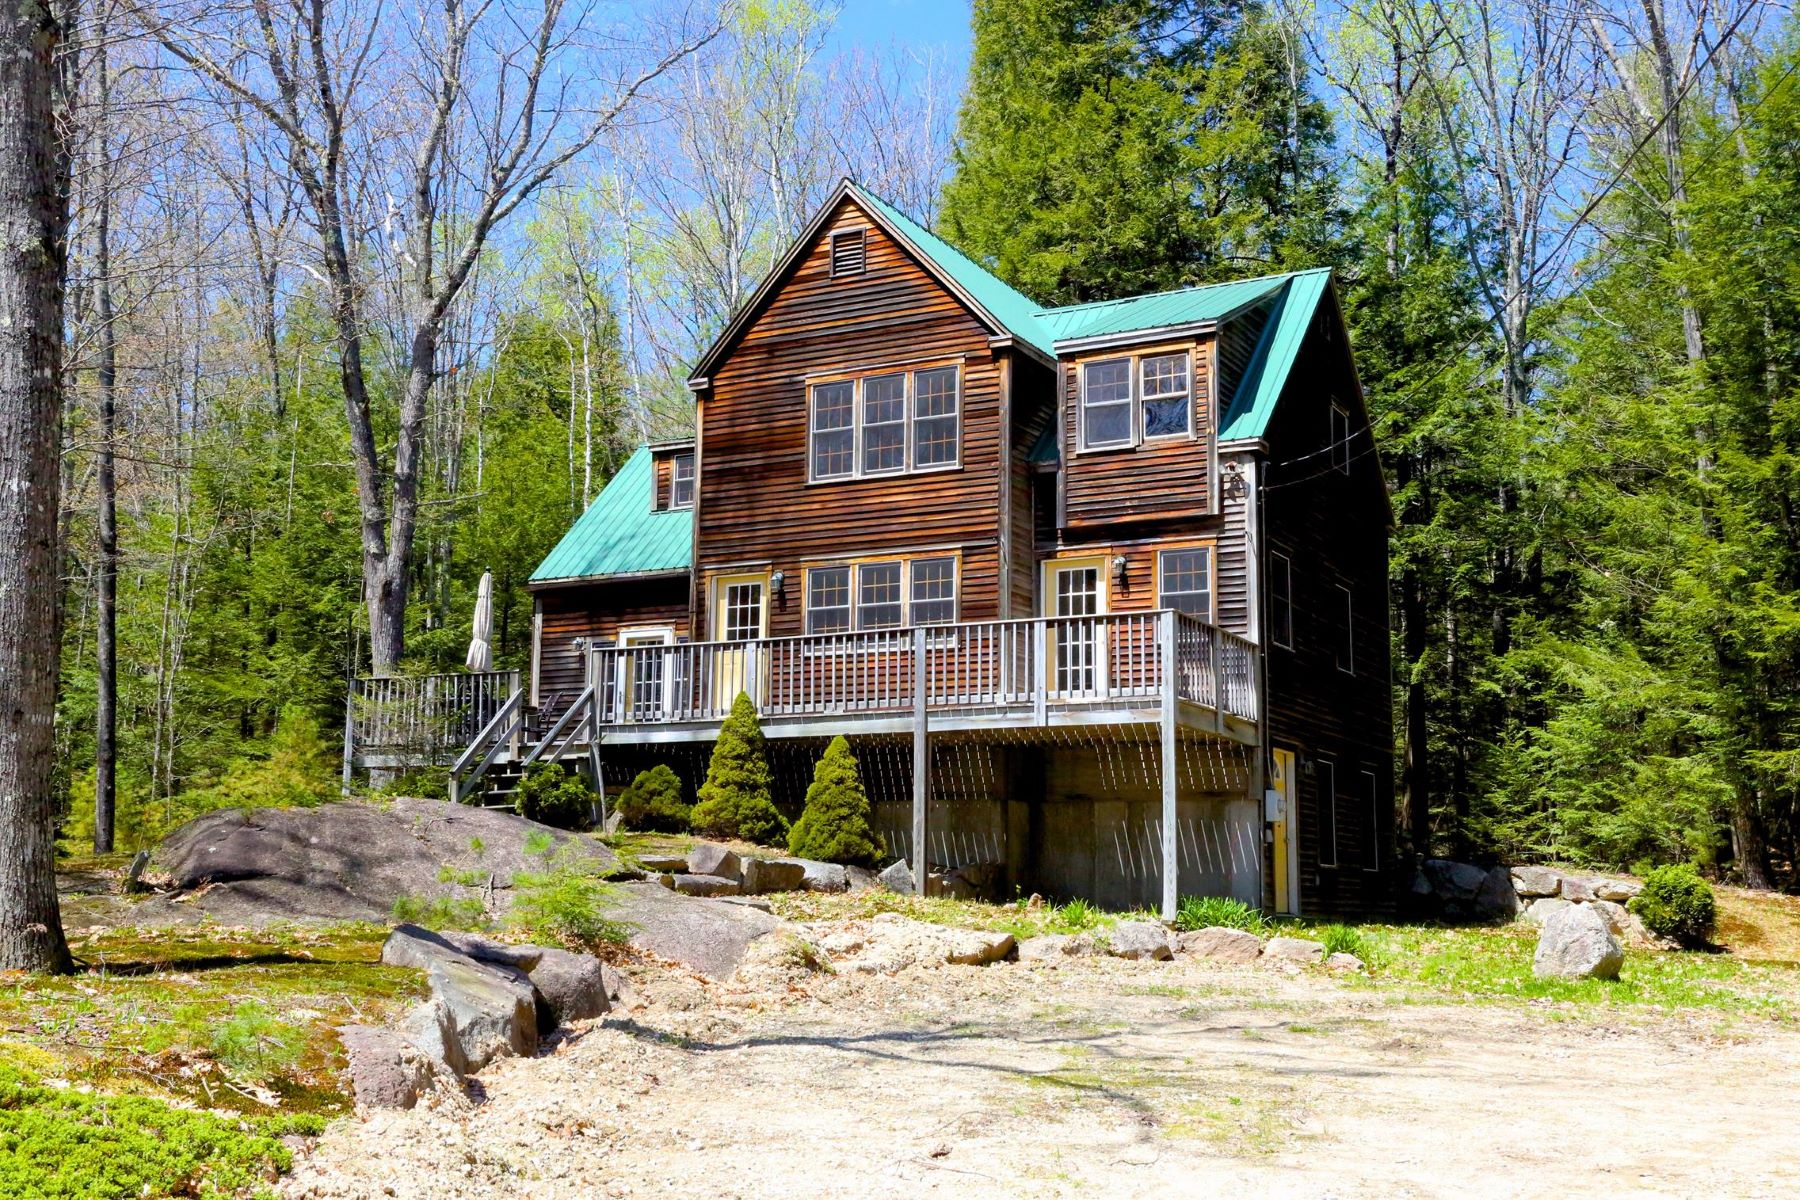 Single Family Home for Sale at Kezar Lake Shared Beach 184 Keyser St Sutton, New Hampshire 03260 United States